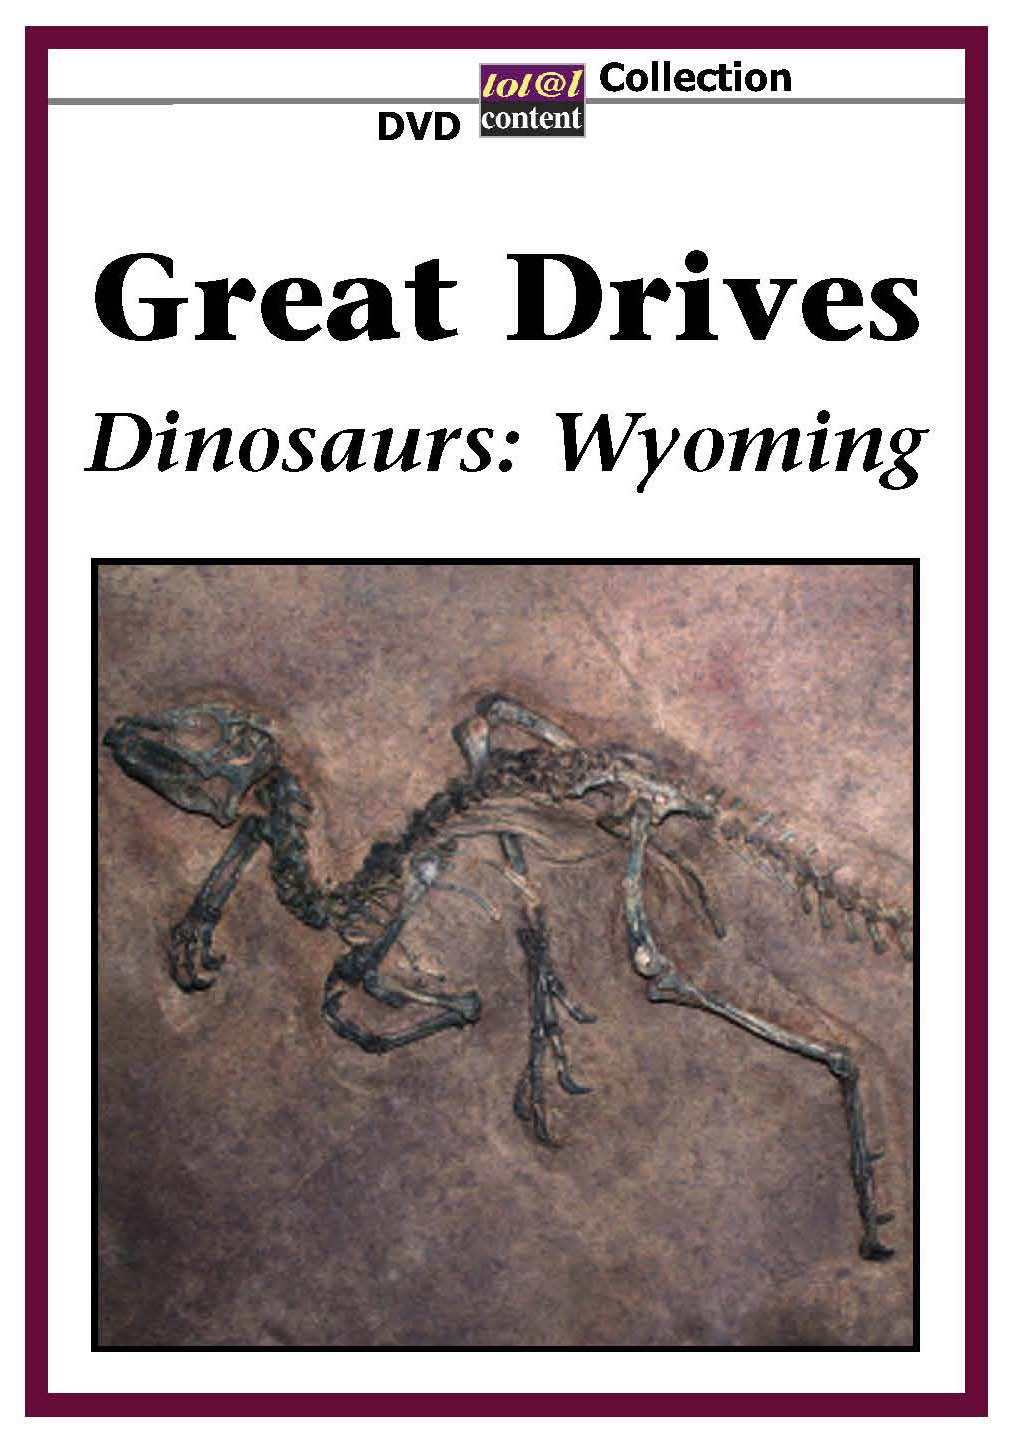 Great Drives: Dinosaurs - Wyoming